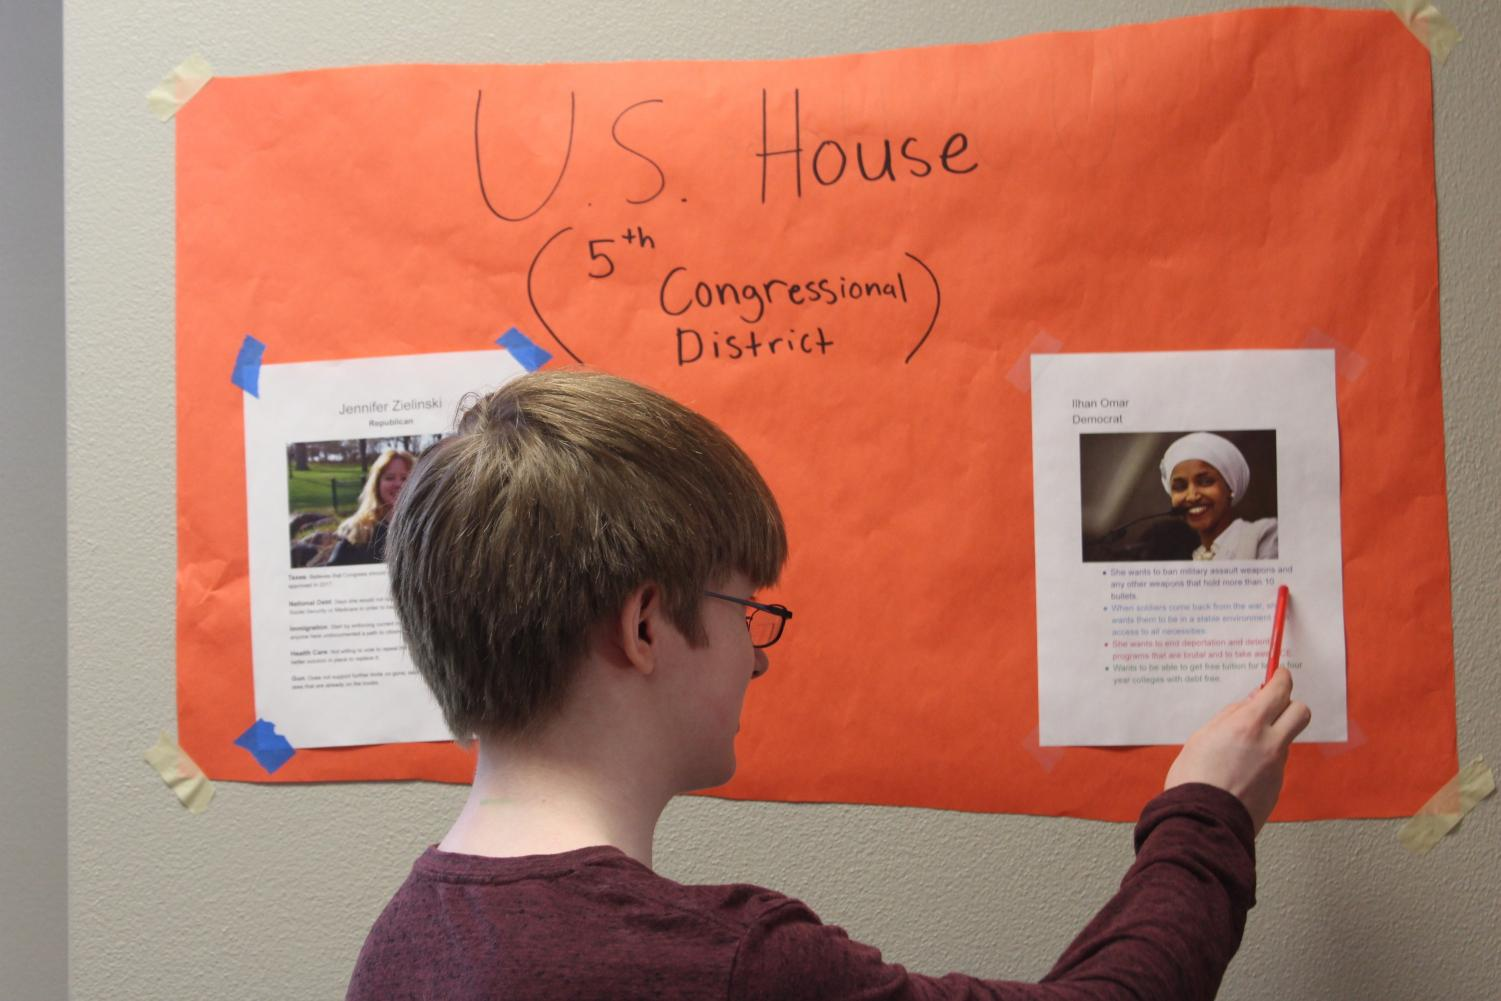 Sophomore Joseph McIndoo learns about NTA club poster encouraging students to vote. Several more Posters are hung up around the high school cafeteria.